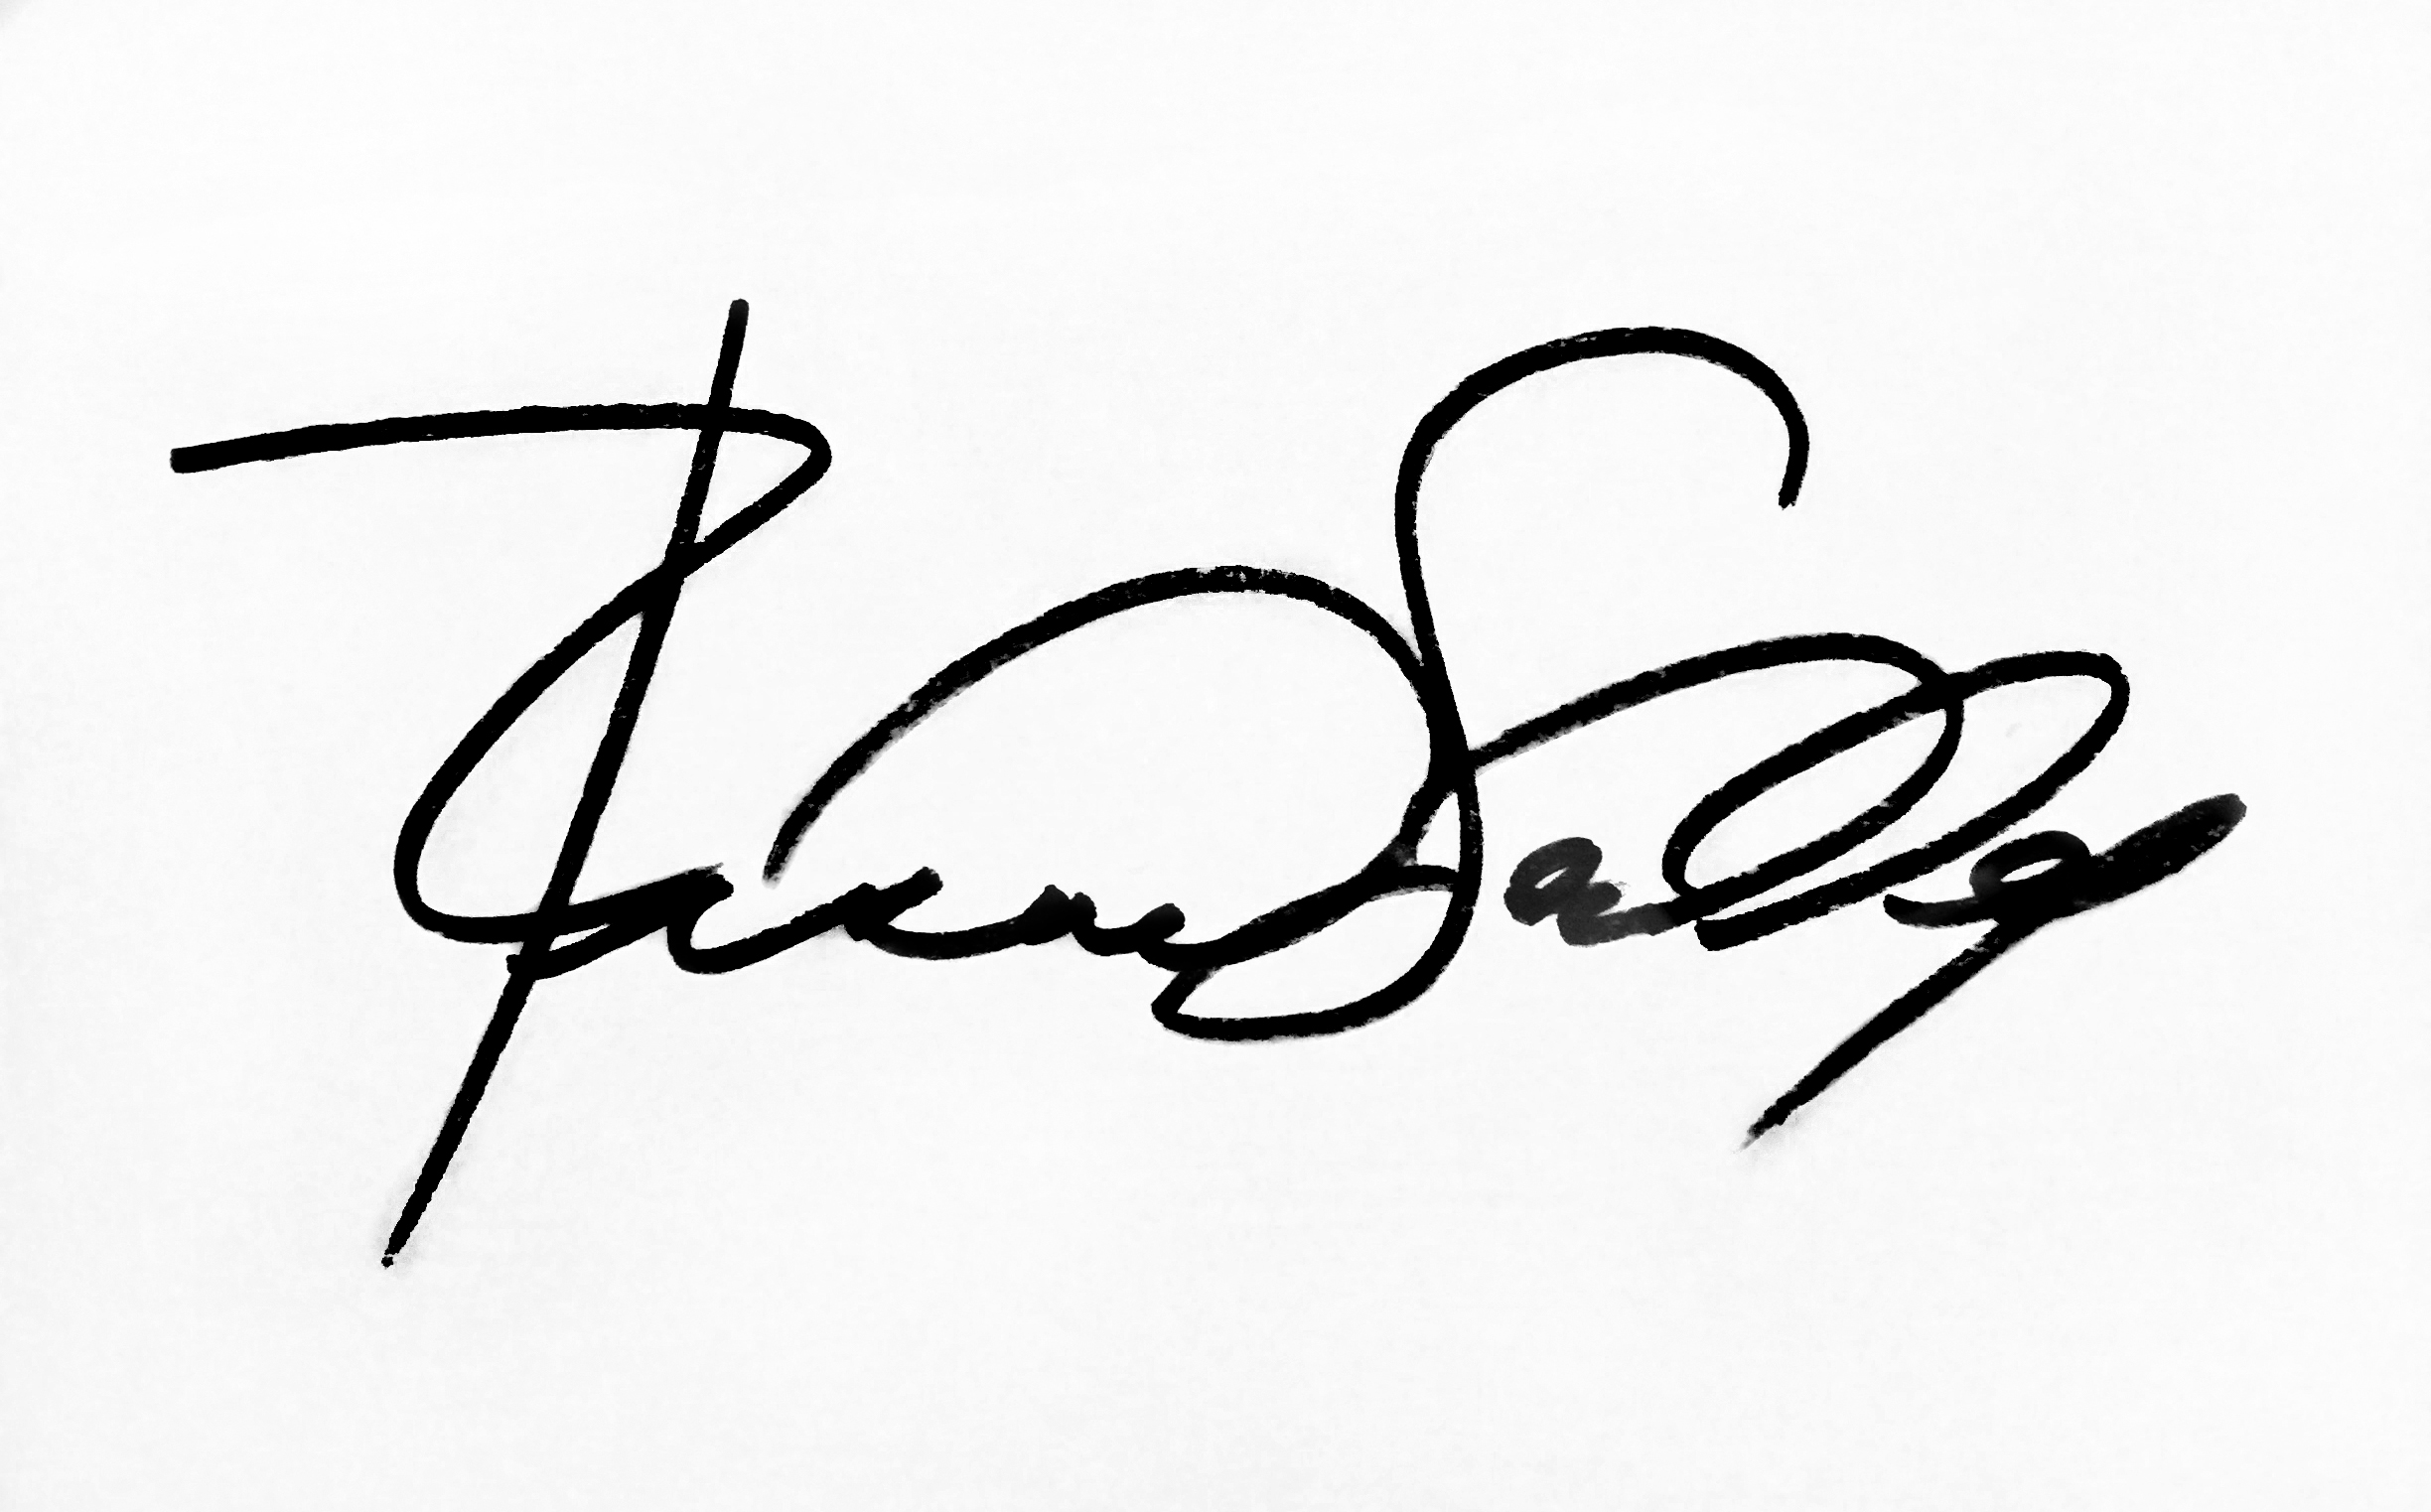 Richard Scudder's Signature